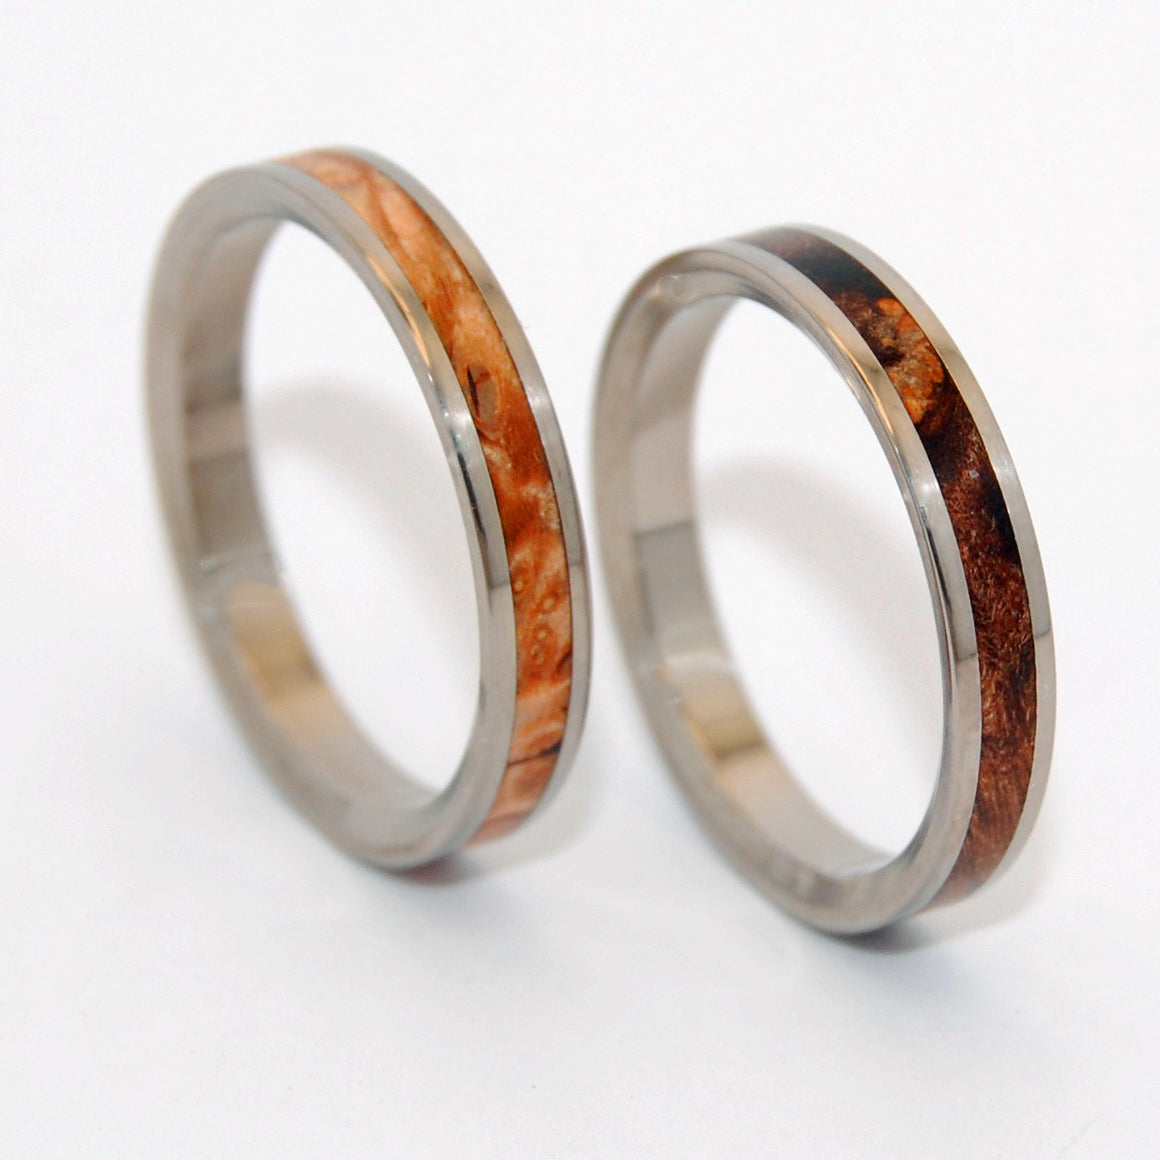 OWL MOON | Dark Maple & Light Maple Wood - Wooden Wedding Rings - His & Hers Matching Titanium Wedding Rings Set - Minter and Richter Designs